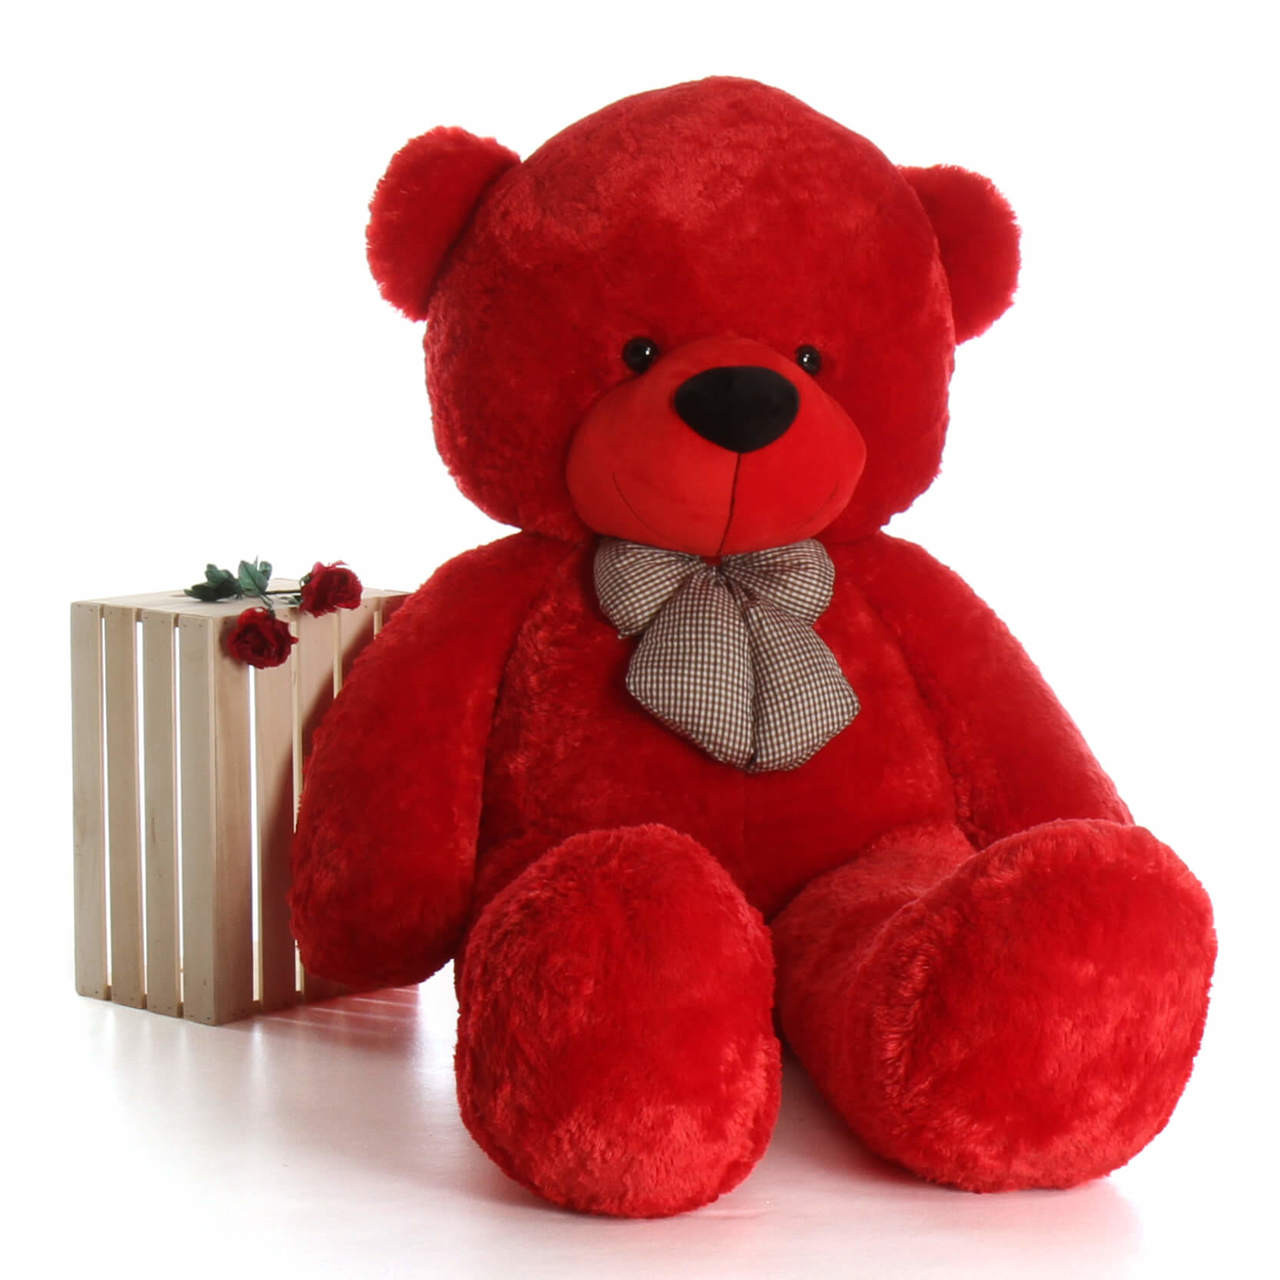 Humongous life size 72in red teddy bear Bitsy Cuddles perfect Christmas or Valentines teddy bear